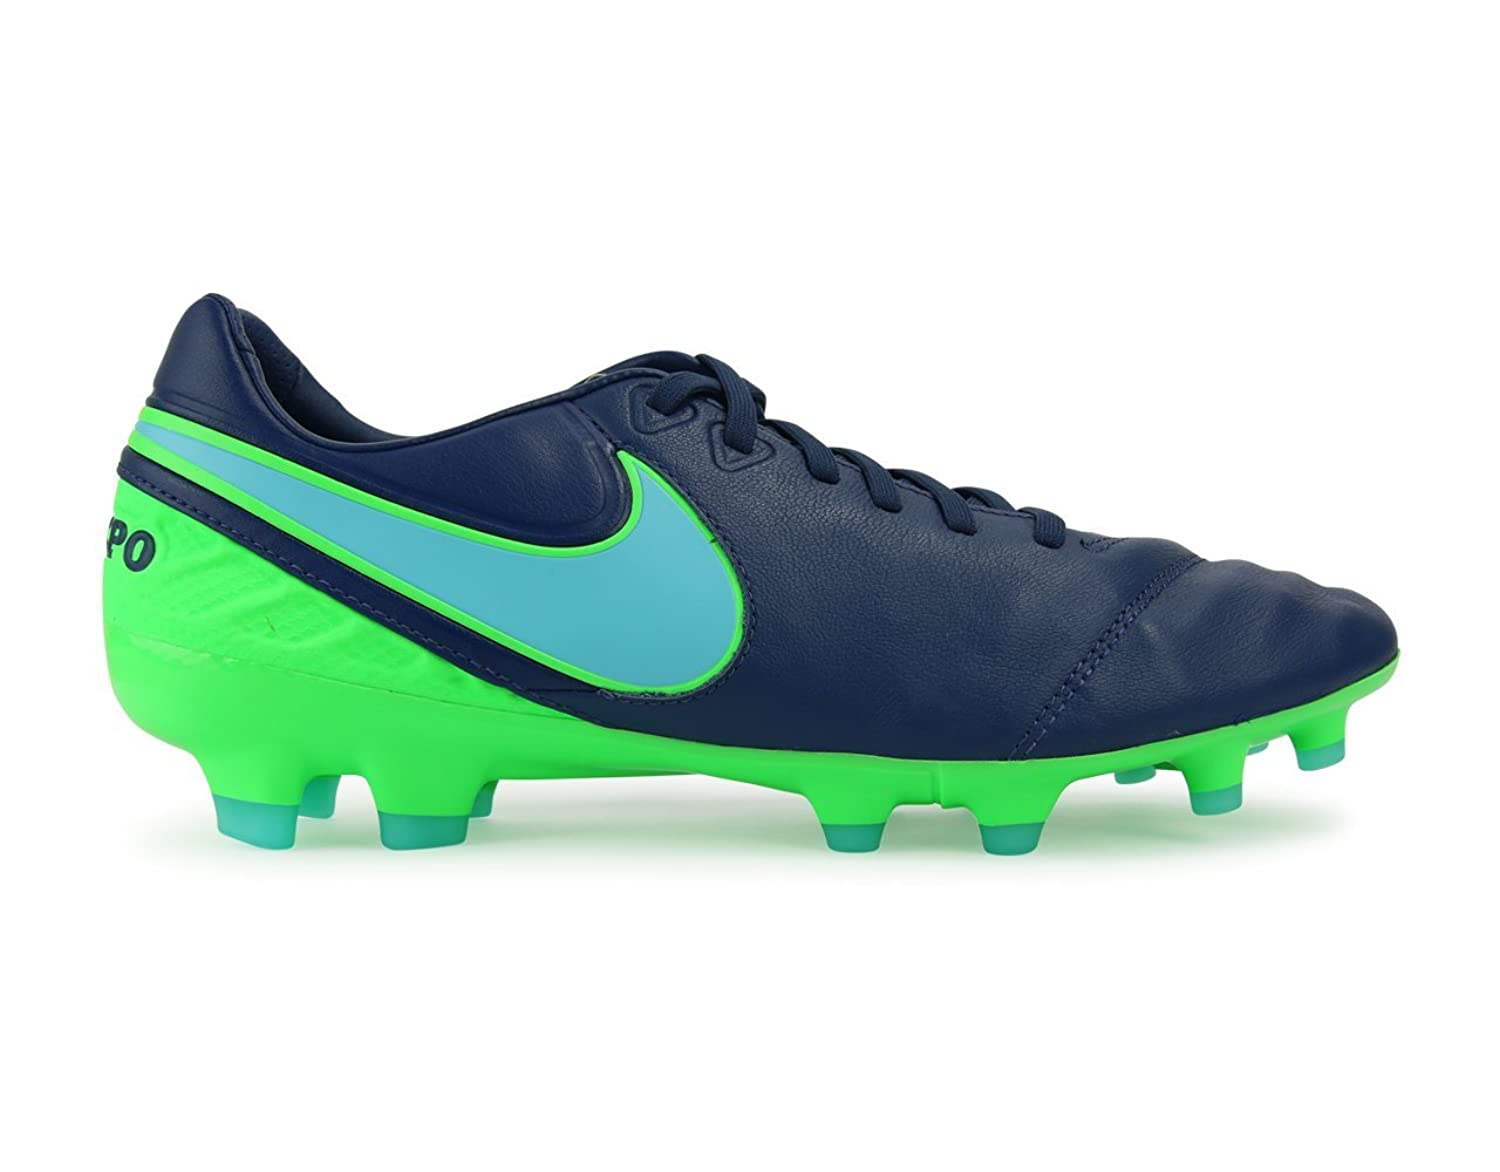 Nike Men's Tiempo Legacy II FG Coastal Blue/Polarized Blue/Rage Green Soccer Shoes B06XCXRQQ1 11 A US